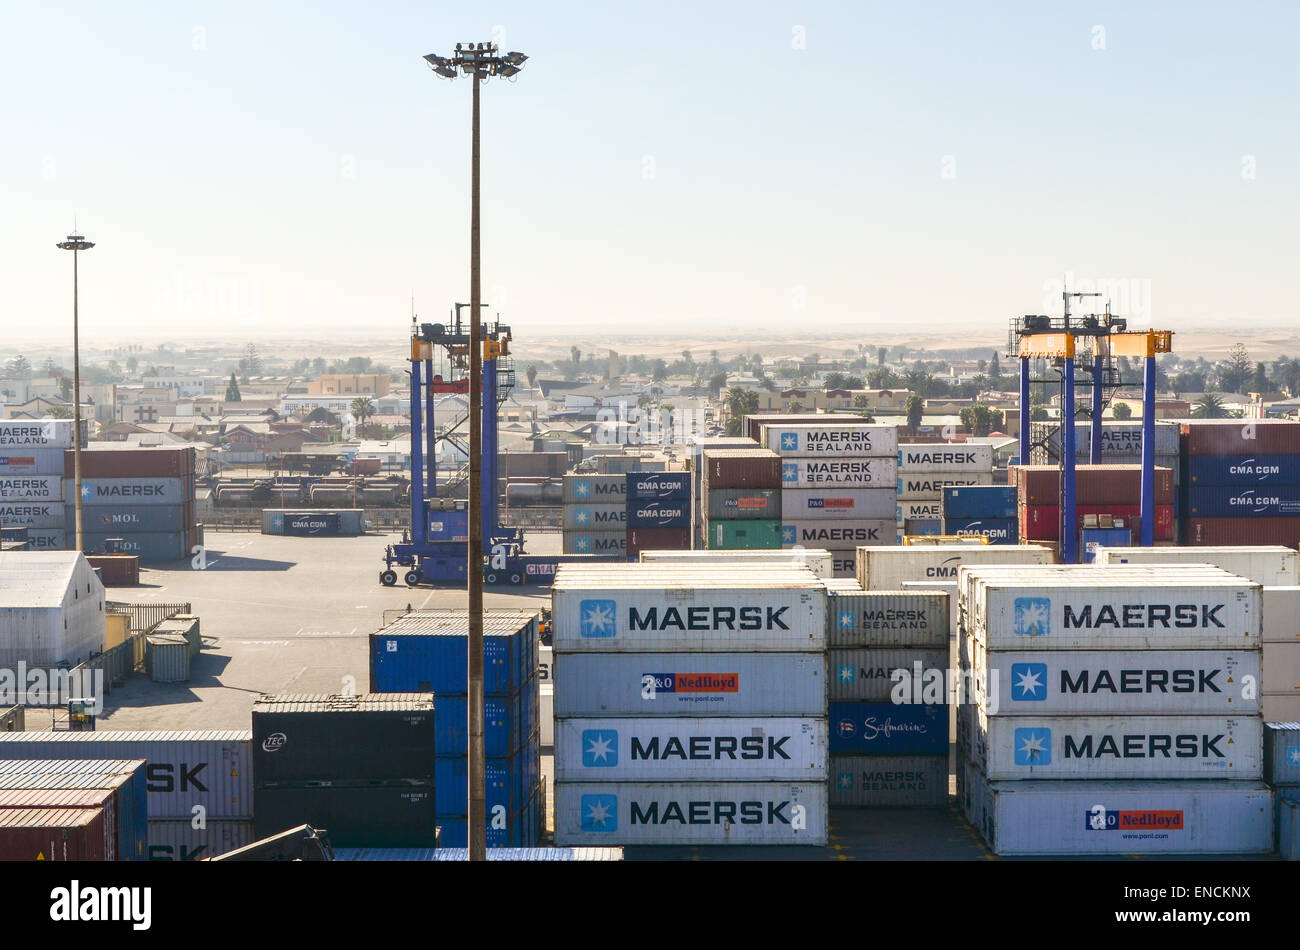 Maersk andother containers at the container terminal of the port of Walvis Bay, Namibia - Stock Image